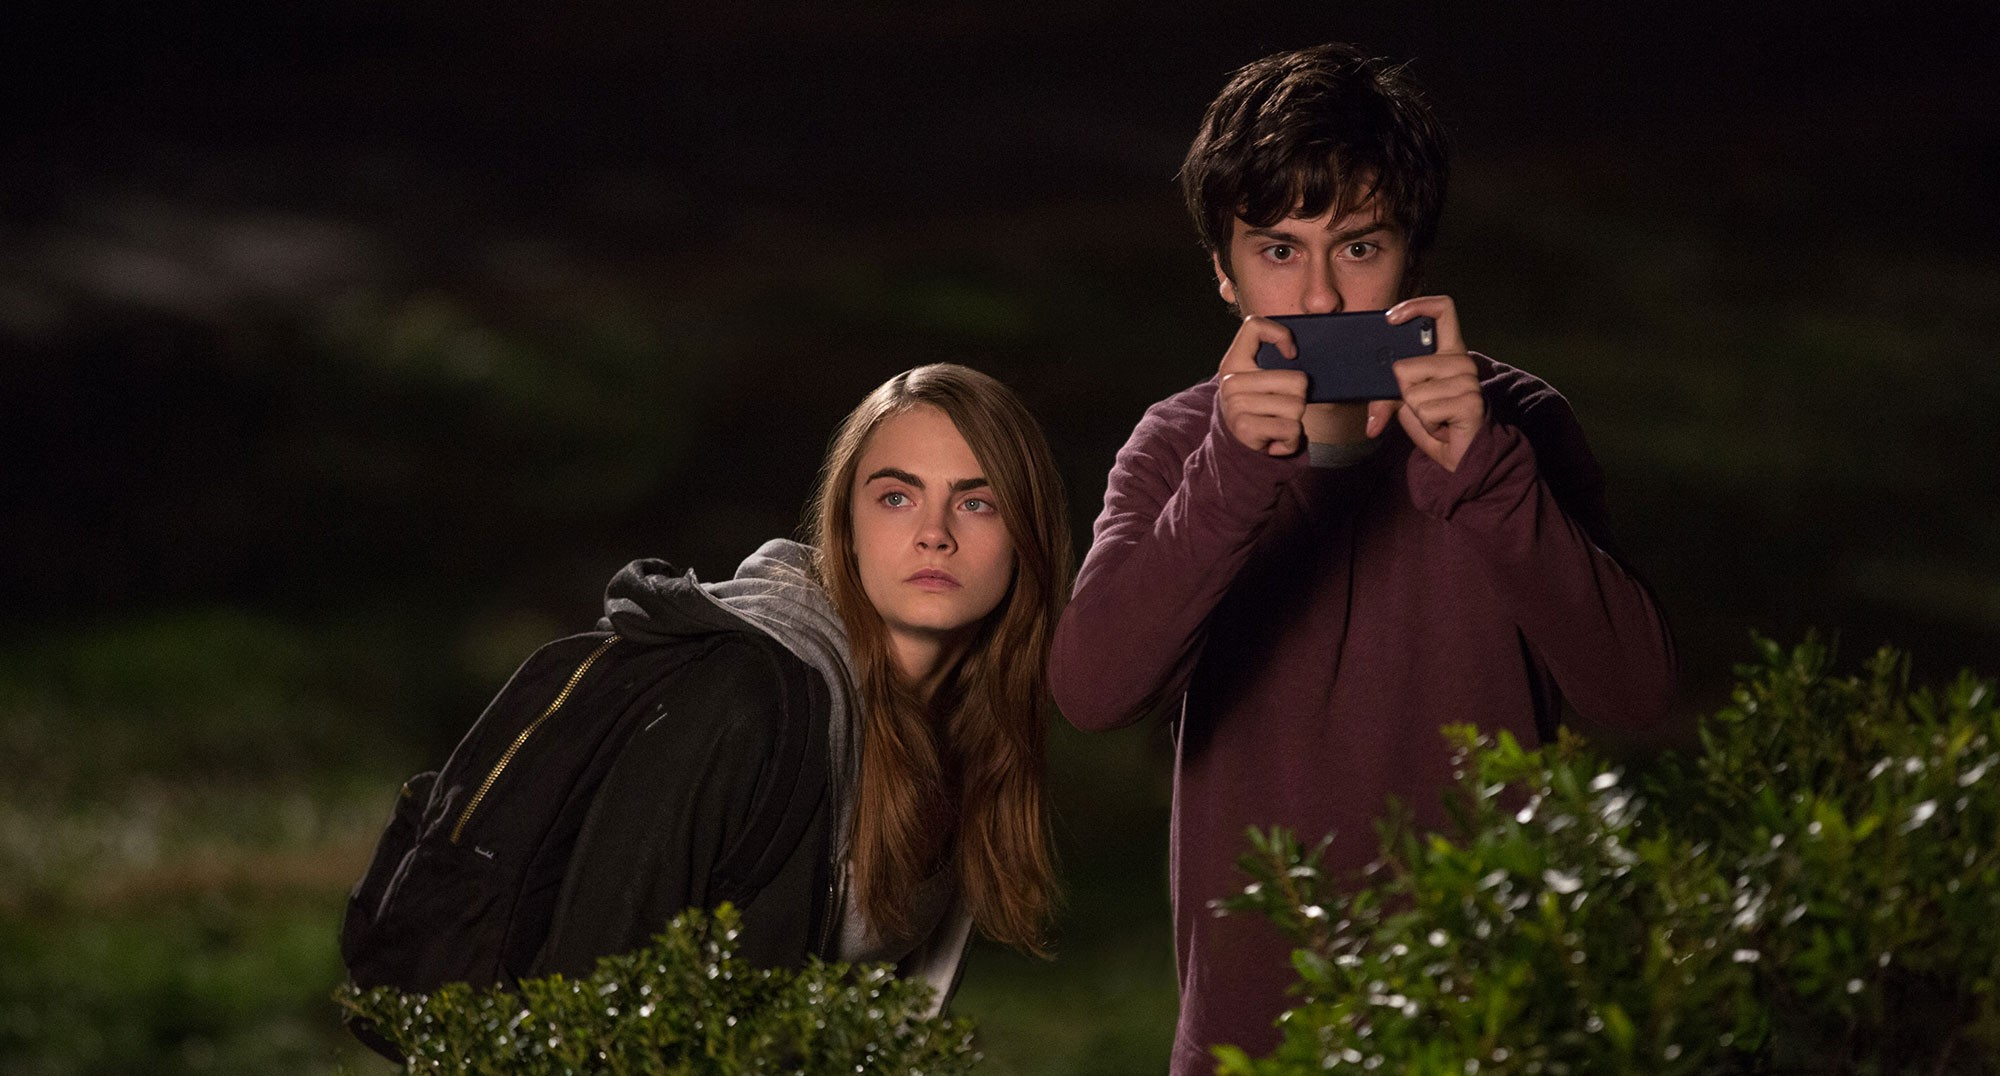 PaperTownsGallery2